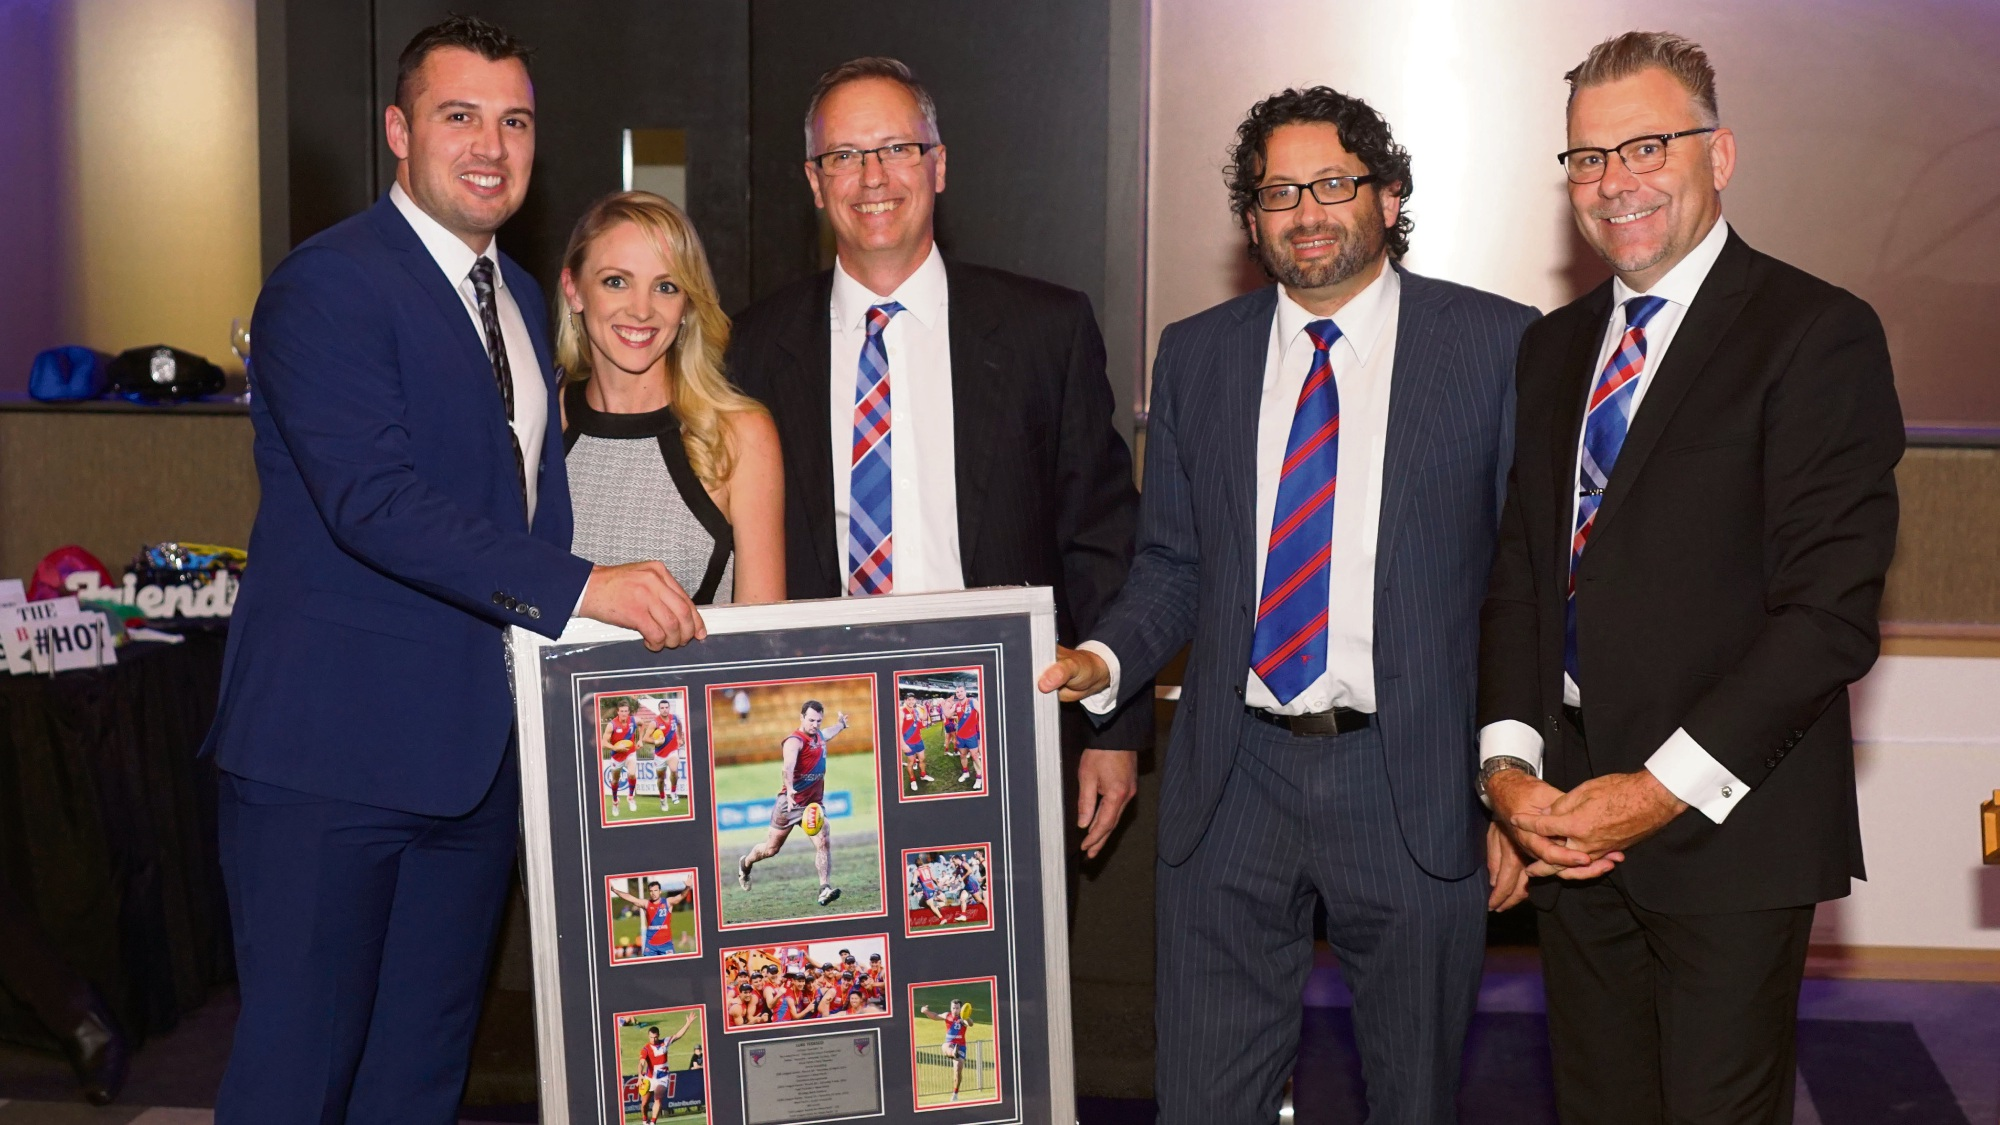 Luke Tedesco (left) receives retirement honours with board members Rebecca Pearce, Rob Jackson, Richard Homsany and Chris Erikson. Picture: Matt Beilken